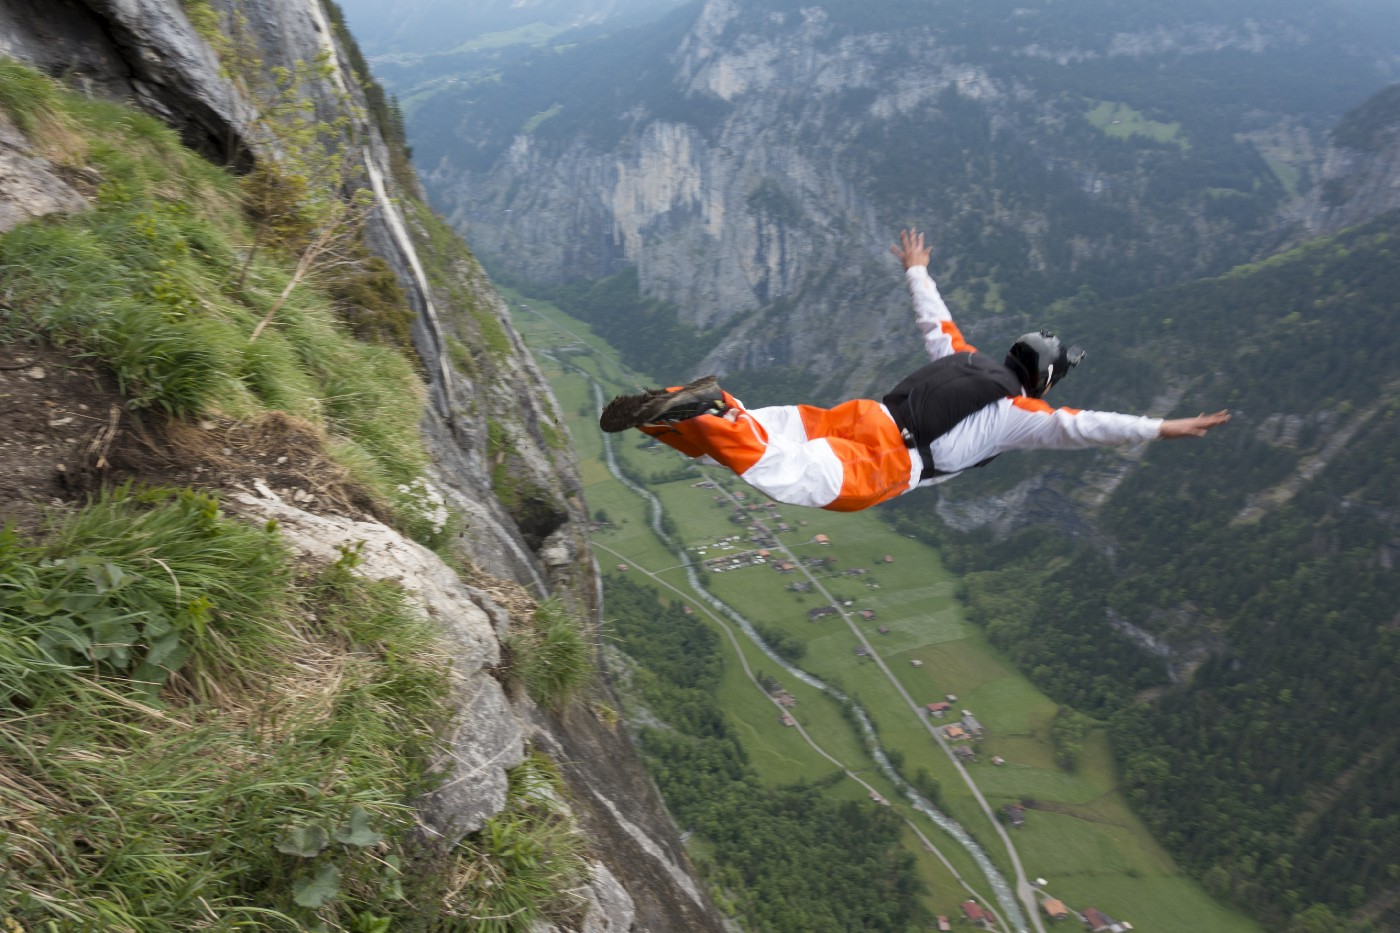 Base jumper diving  down into a valley.